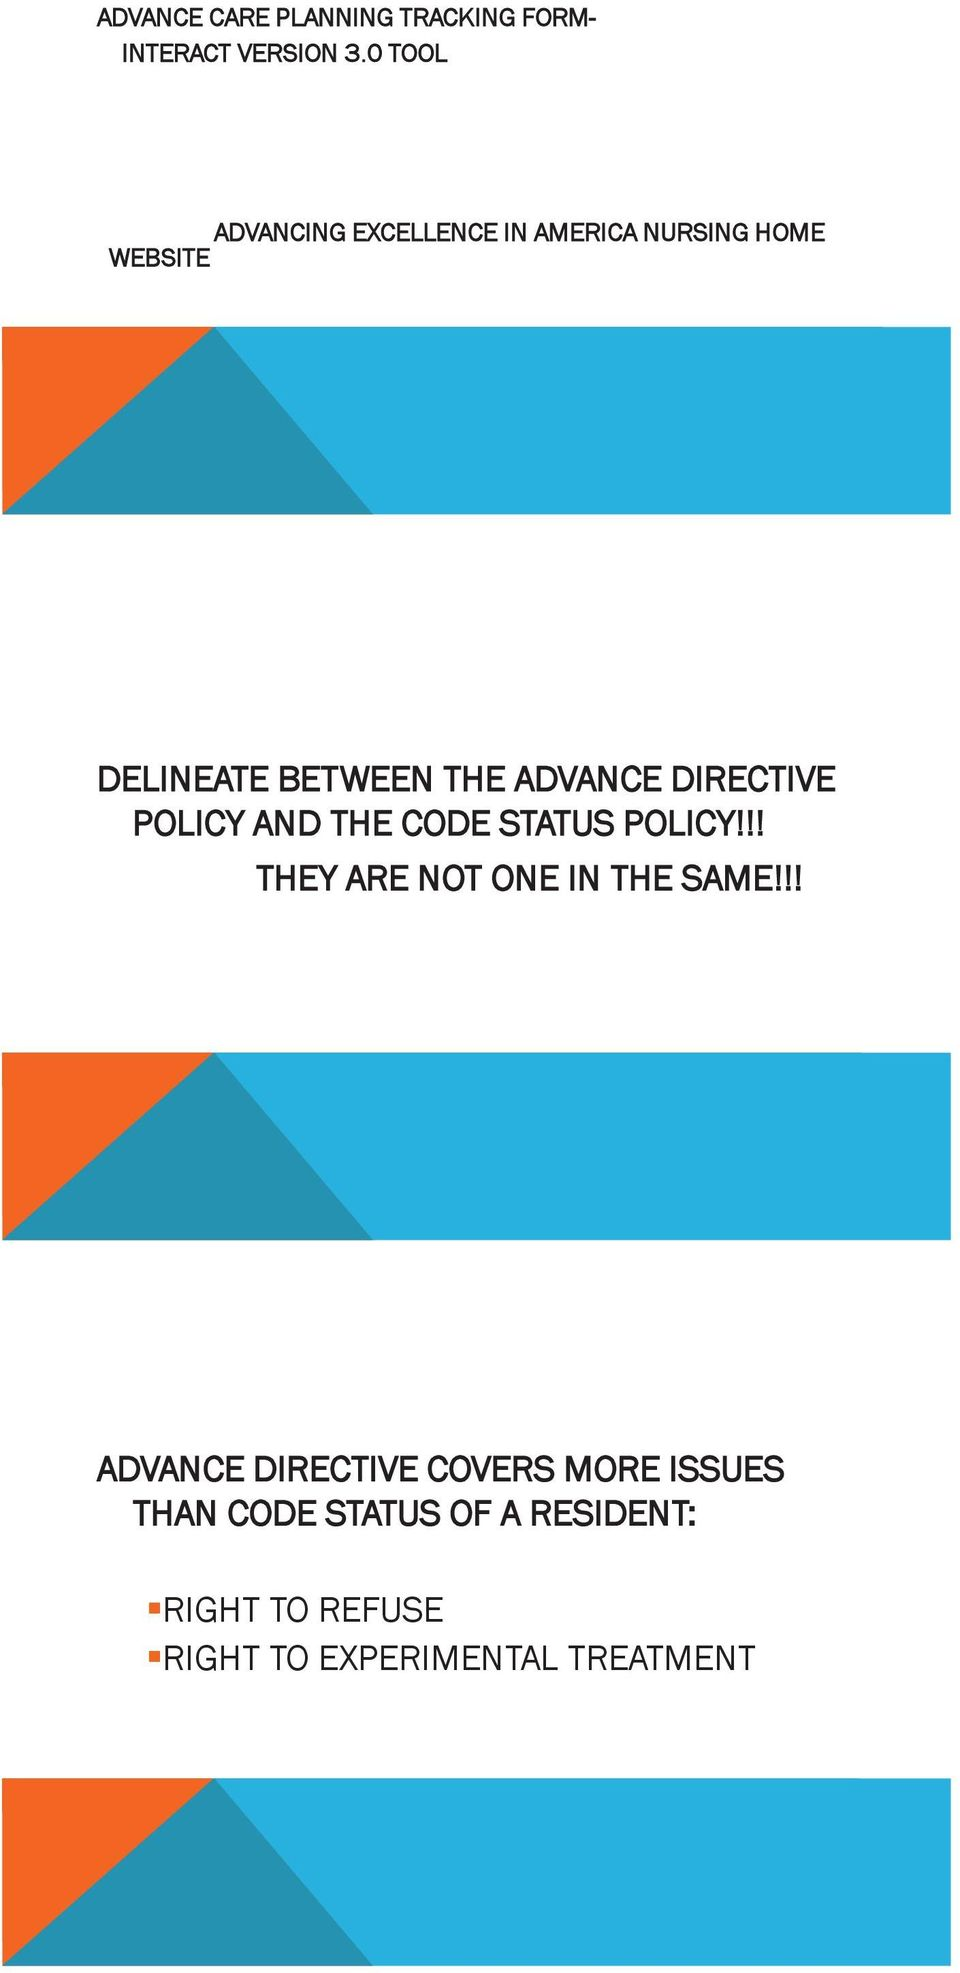 ADVANCE DIRECTIVE POLICY AND THE CODE STATUS POLICY!!! THEY ARE NOT ONE IN THE SAME!